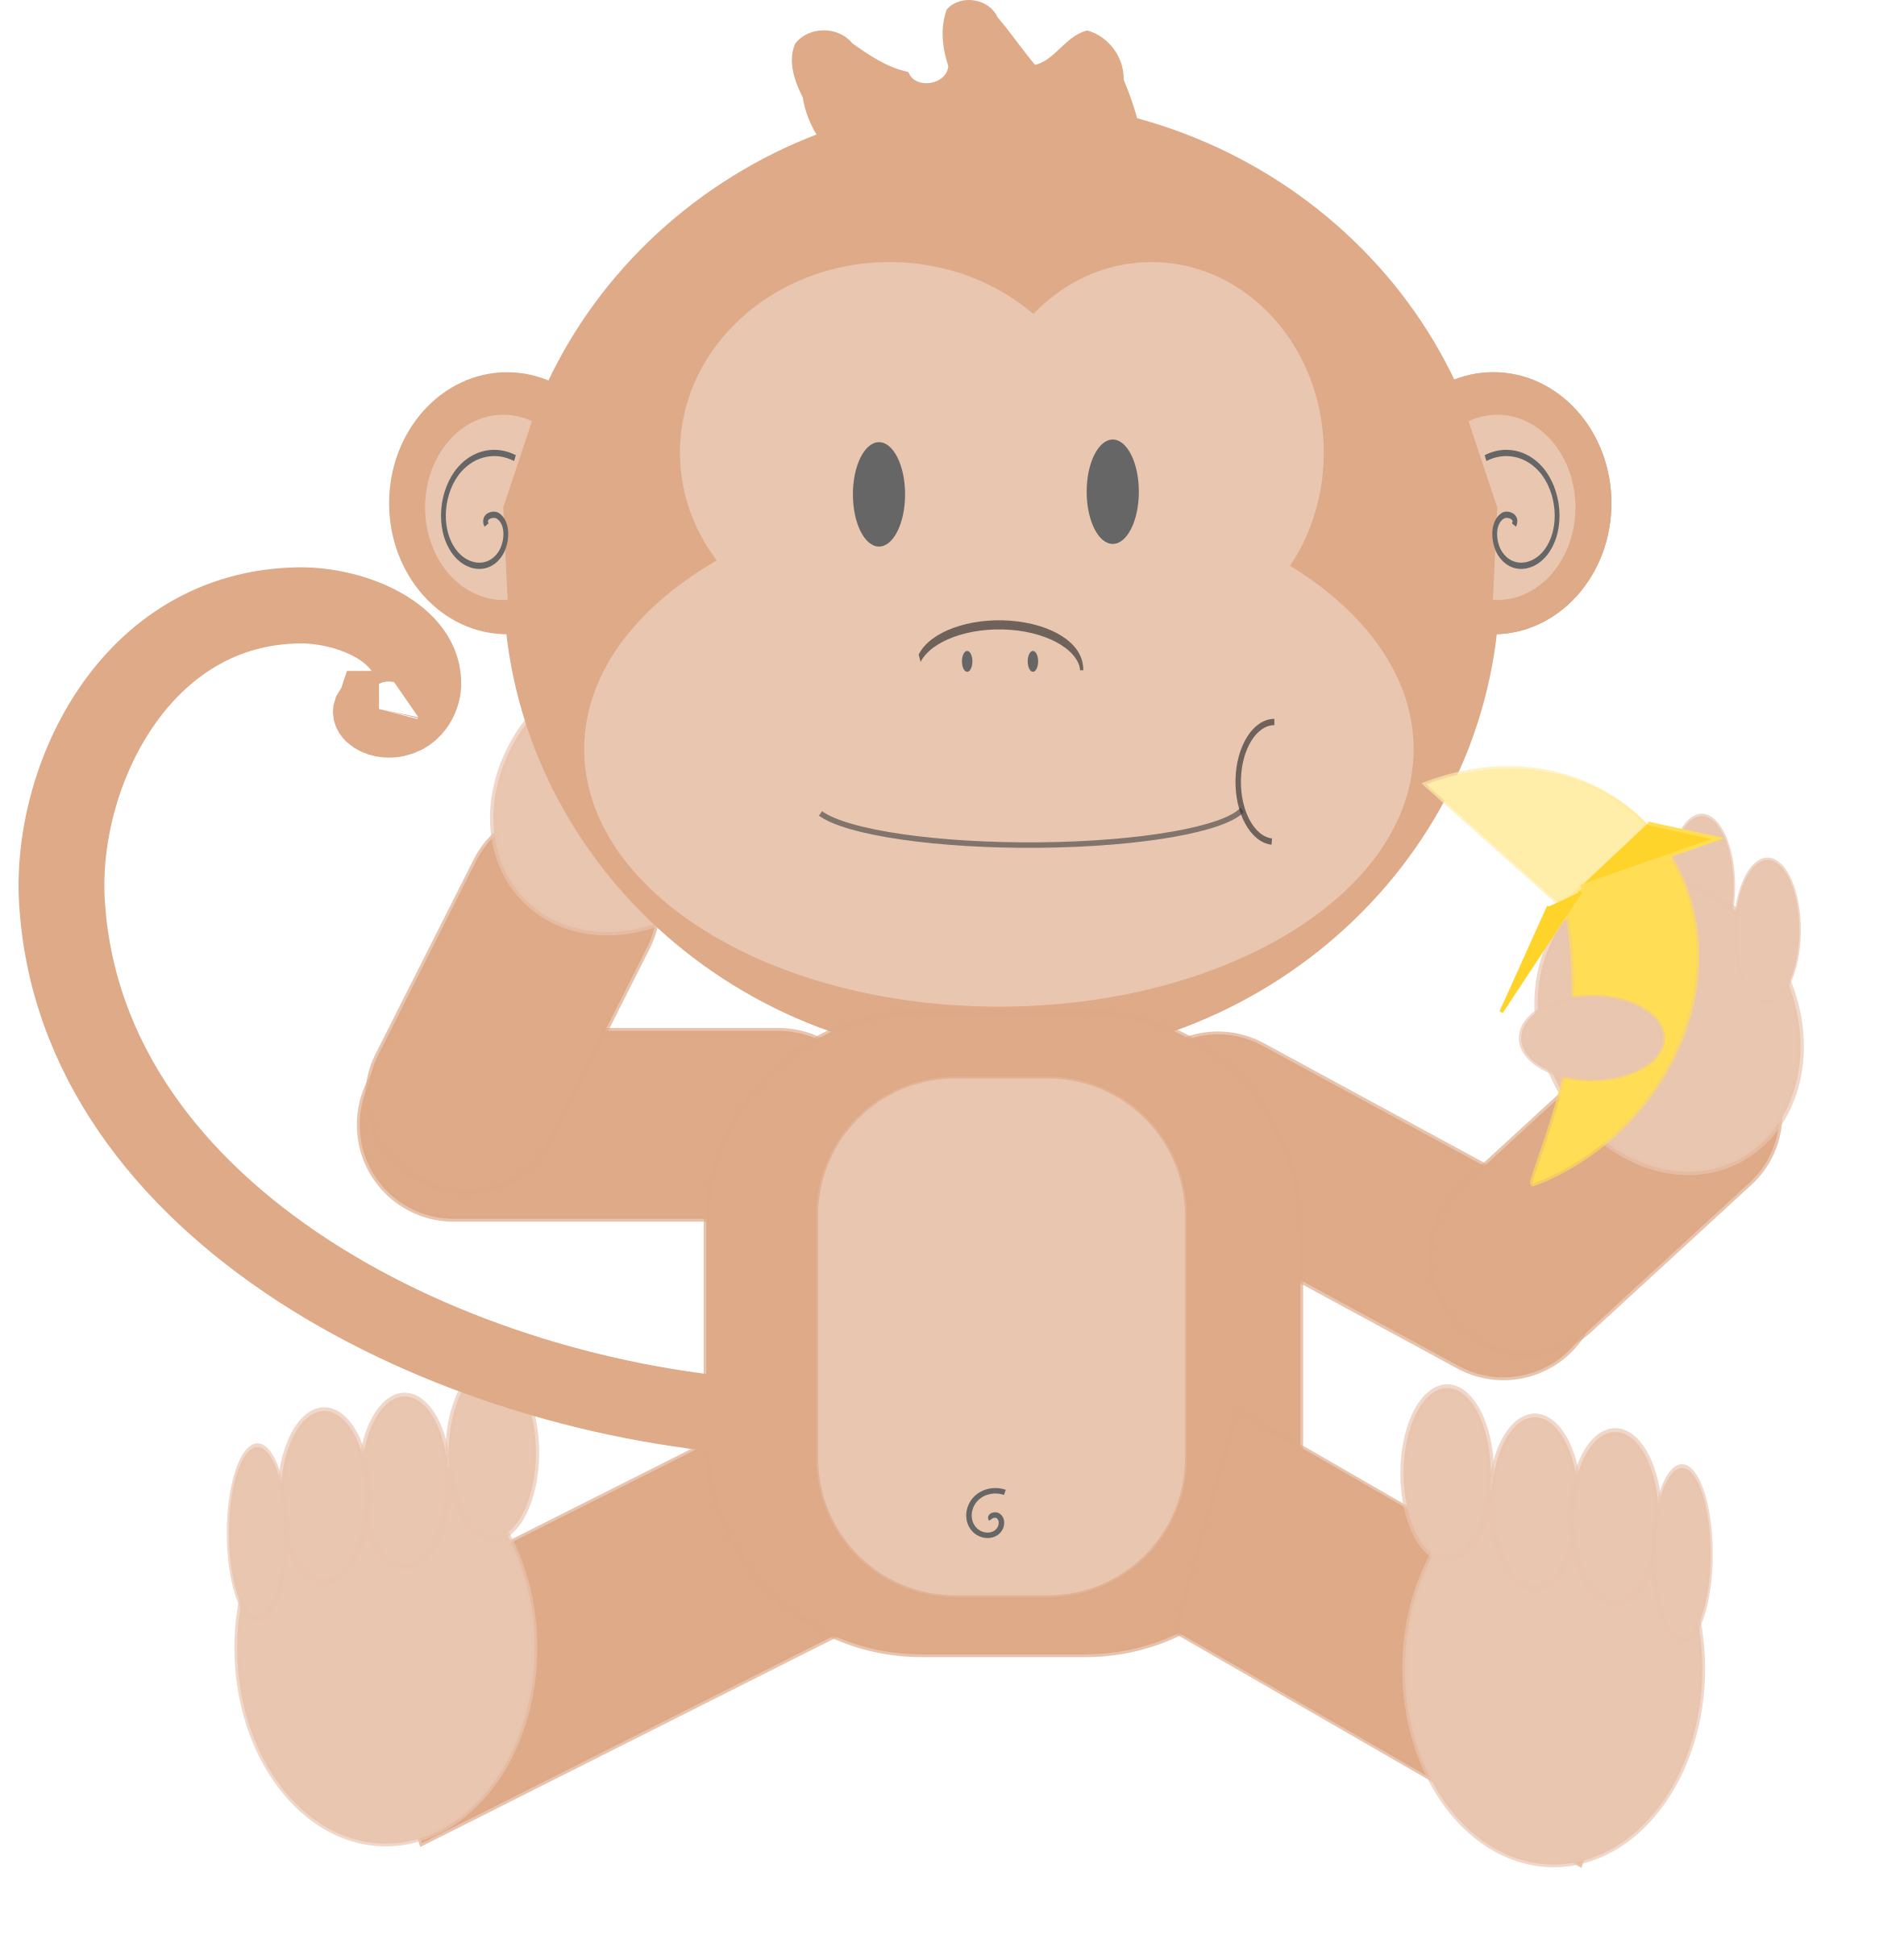 Cartoon image group without. Clipart skull monkey